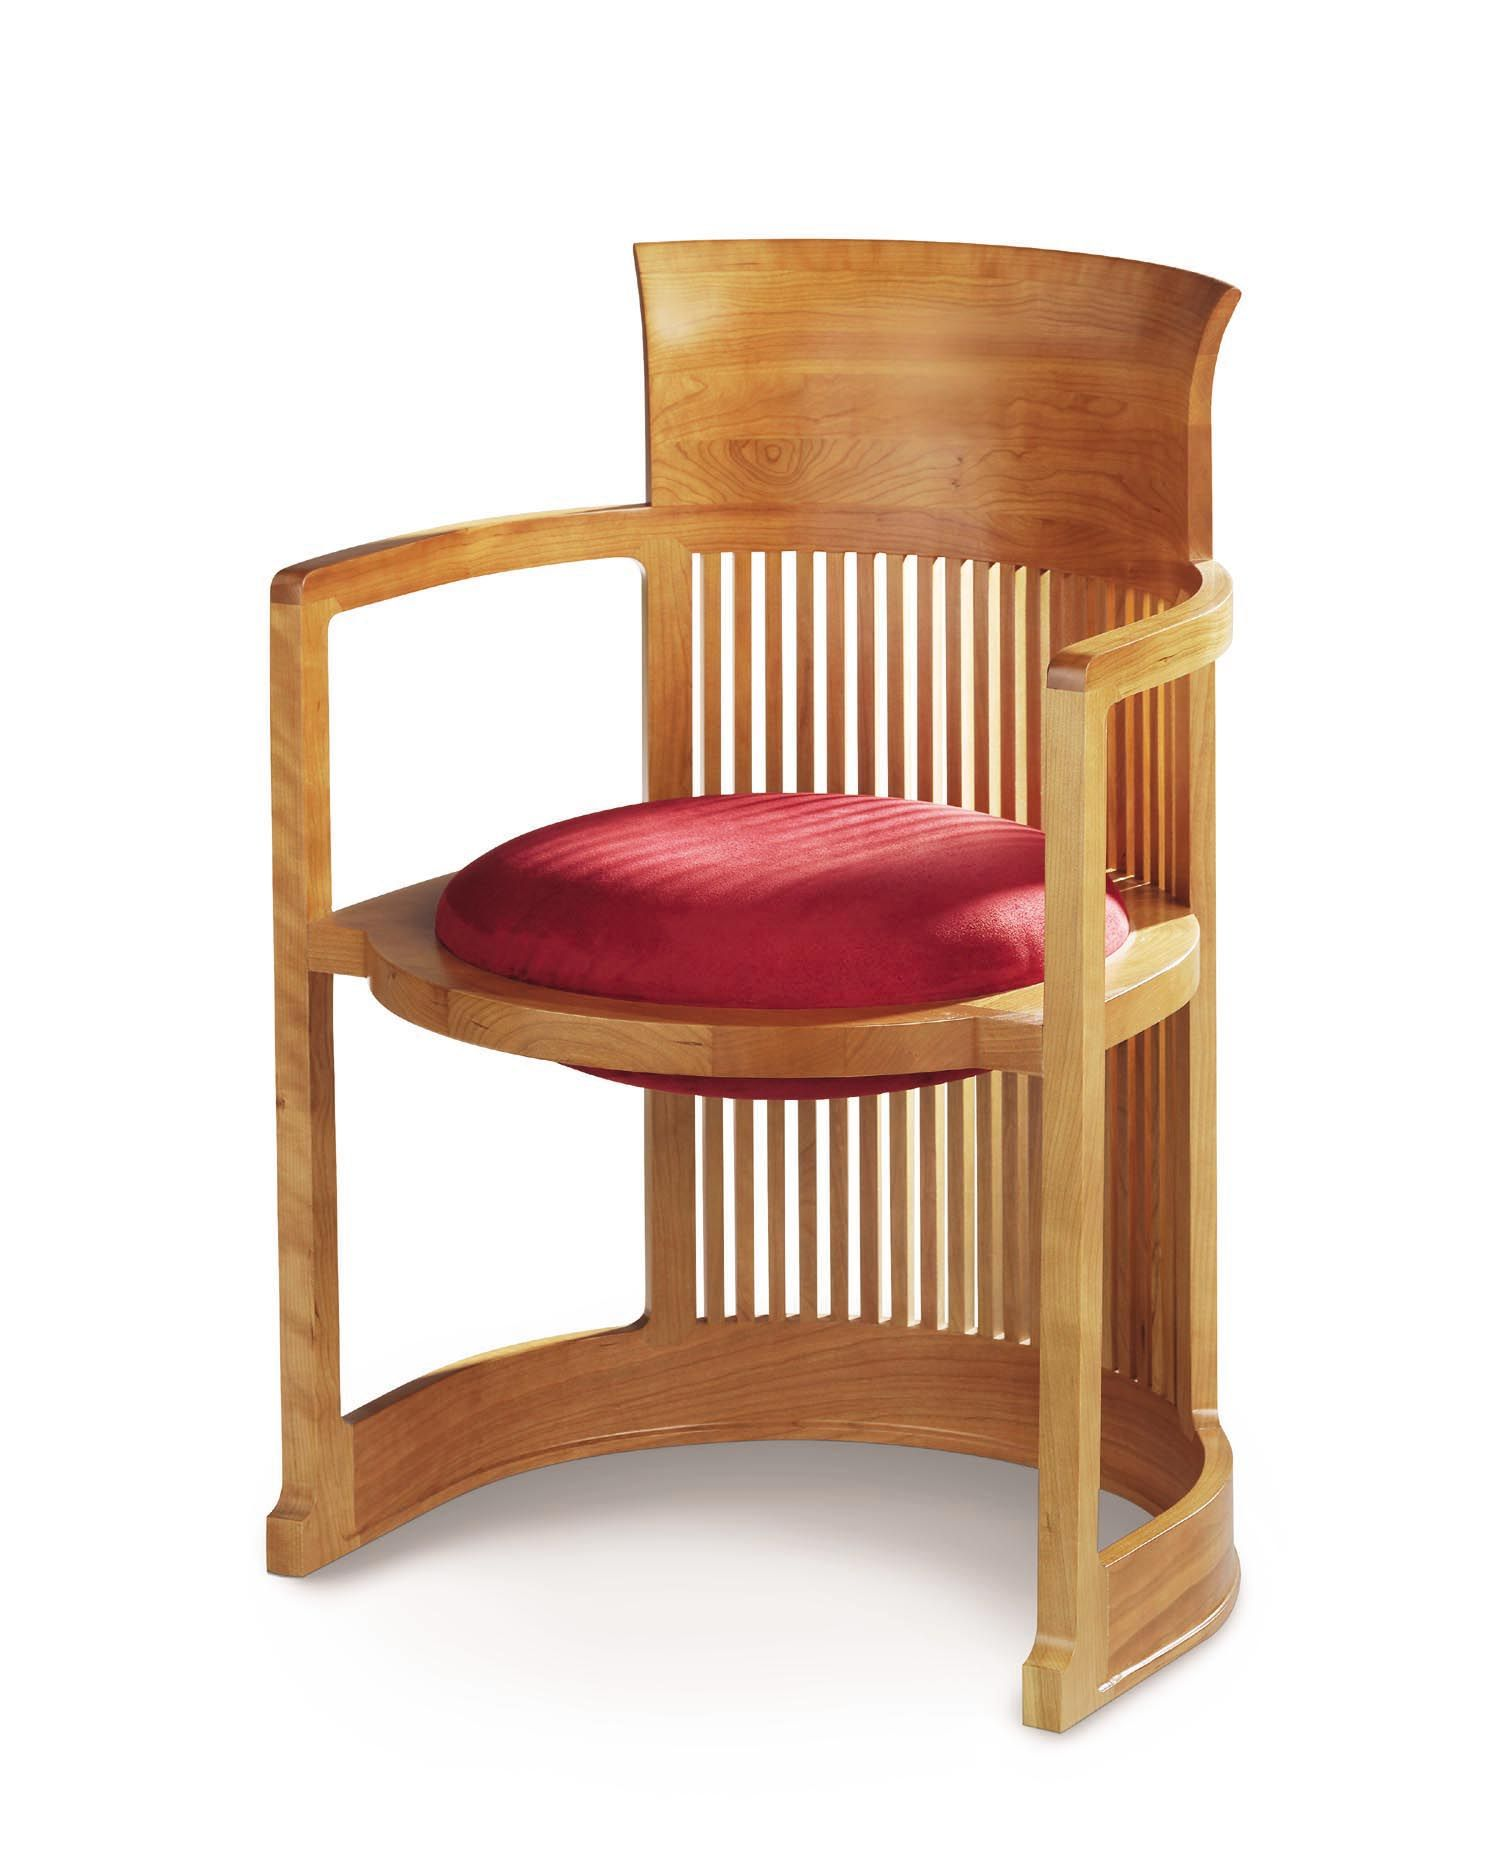 frank lloyd wright barrel chair for the darwin d martin house